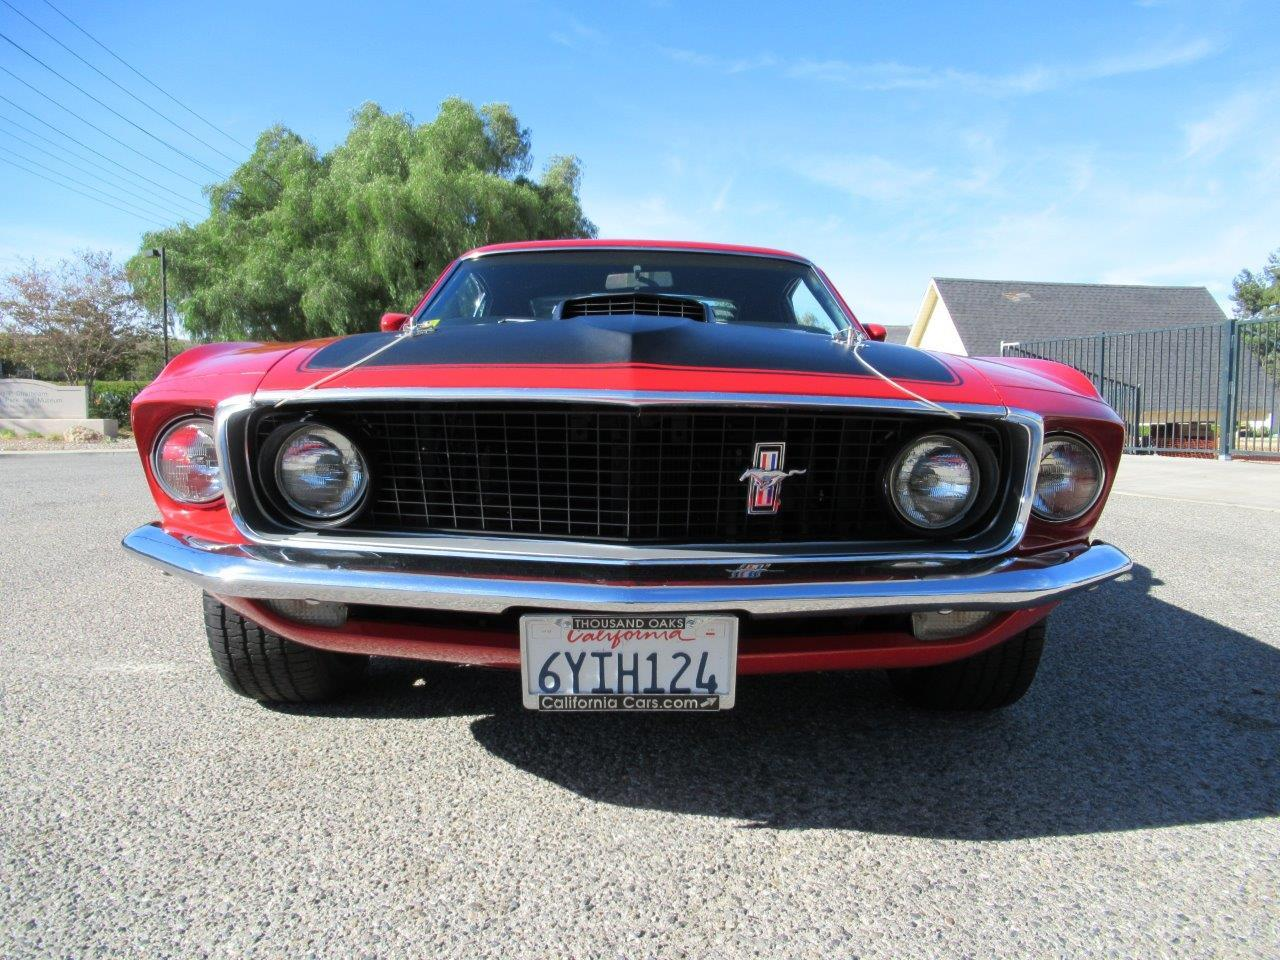 1969 Ford Mustang Mach 1 (CC-1162462) for sale in Simi Valley, California